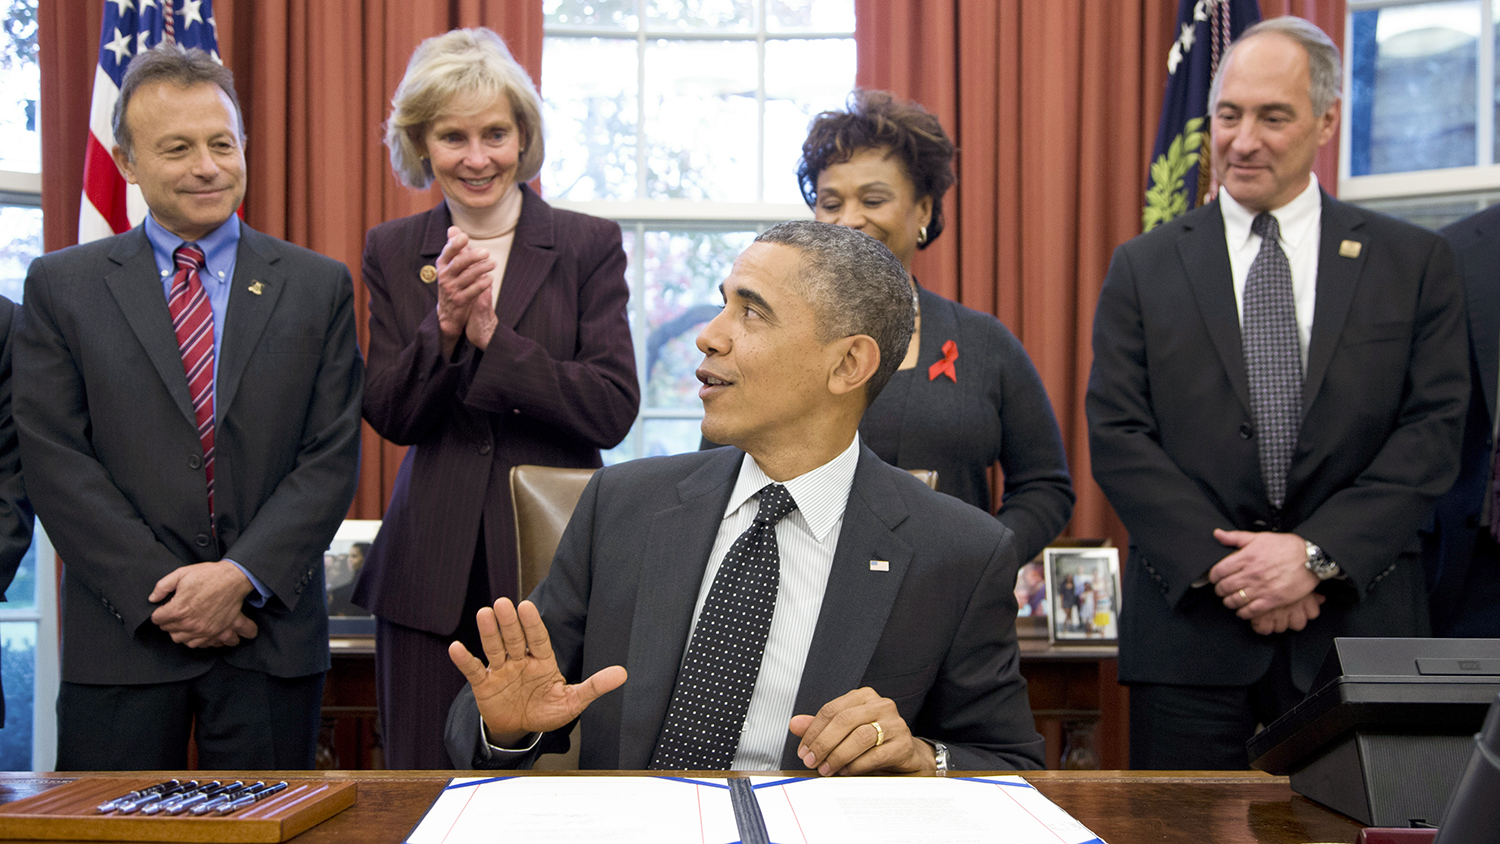 Barack Obama sits at a desk in the Oval Office; Peter Stock looks on